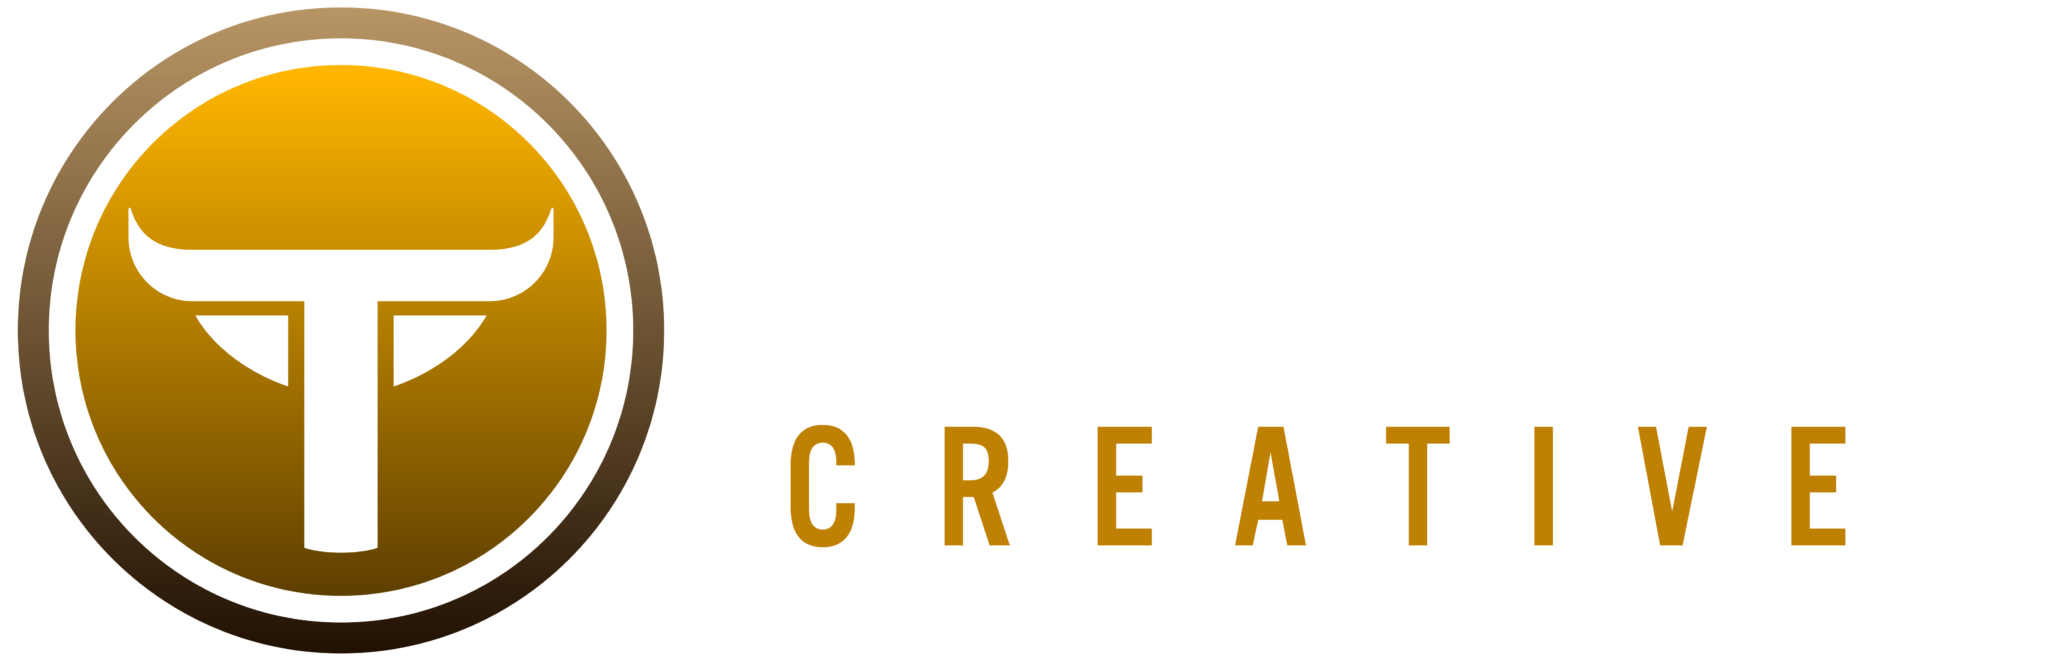 TaurusCreative Horizontal White 1